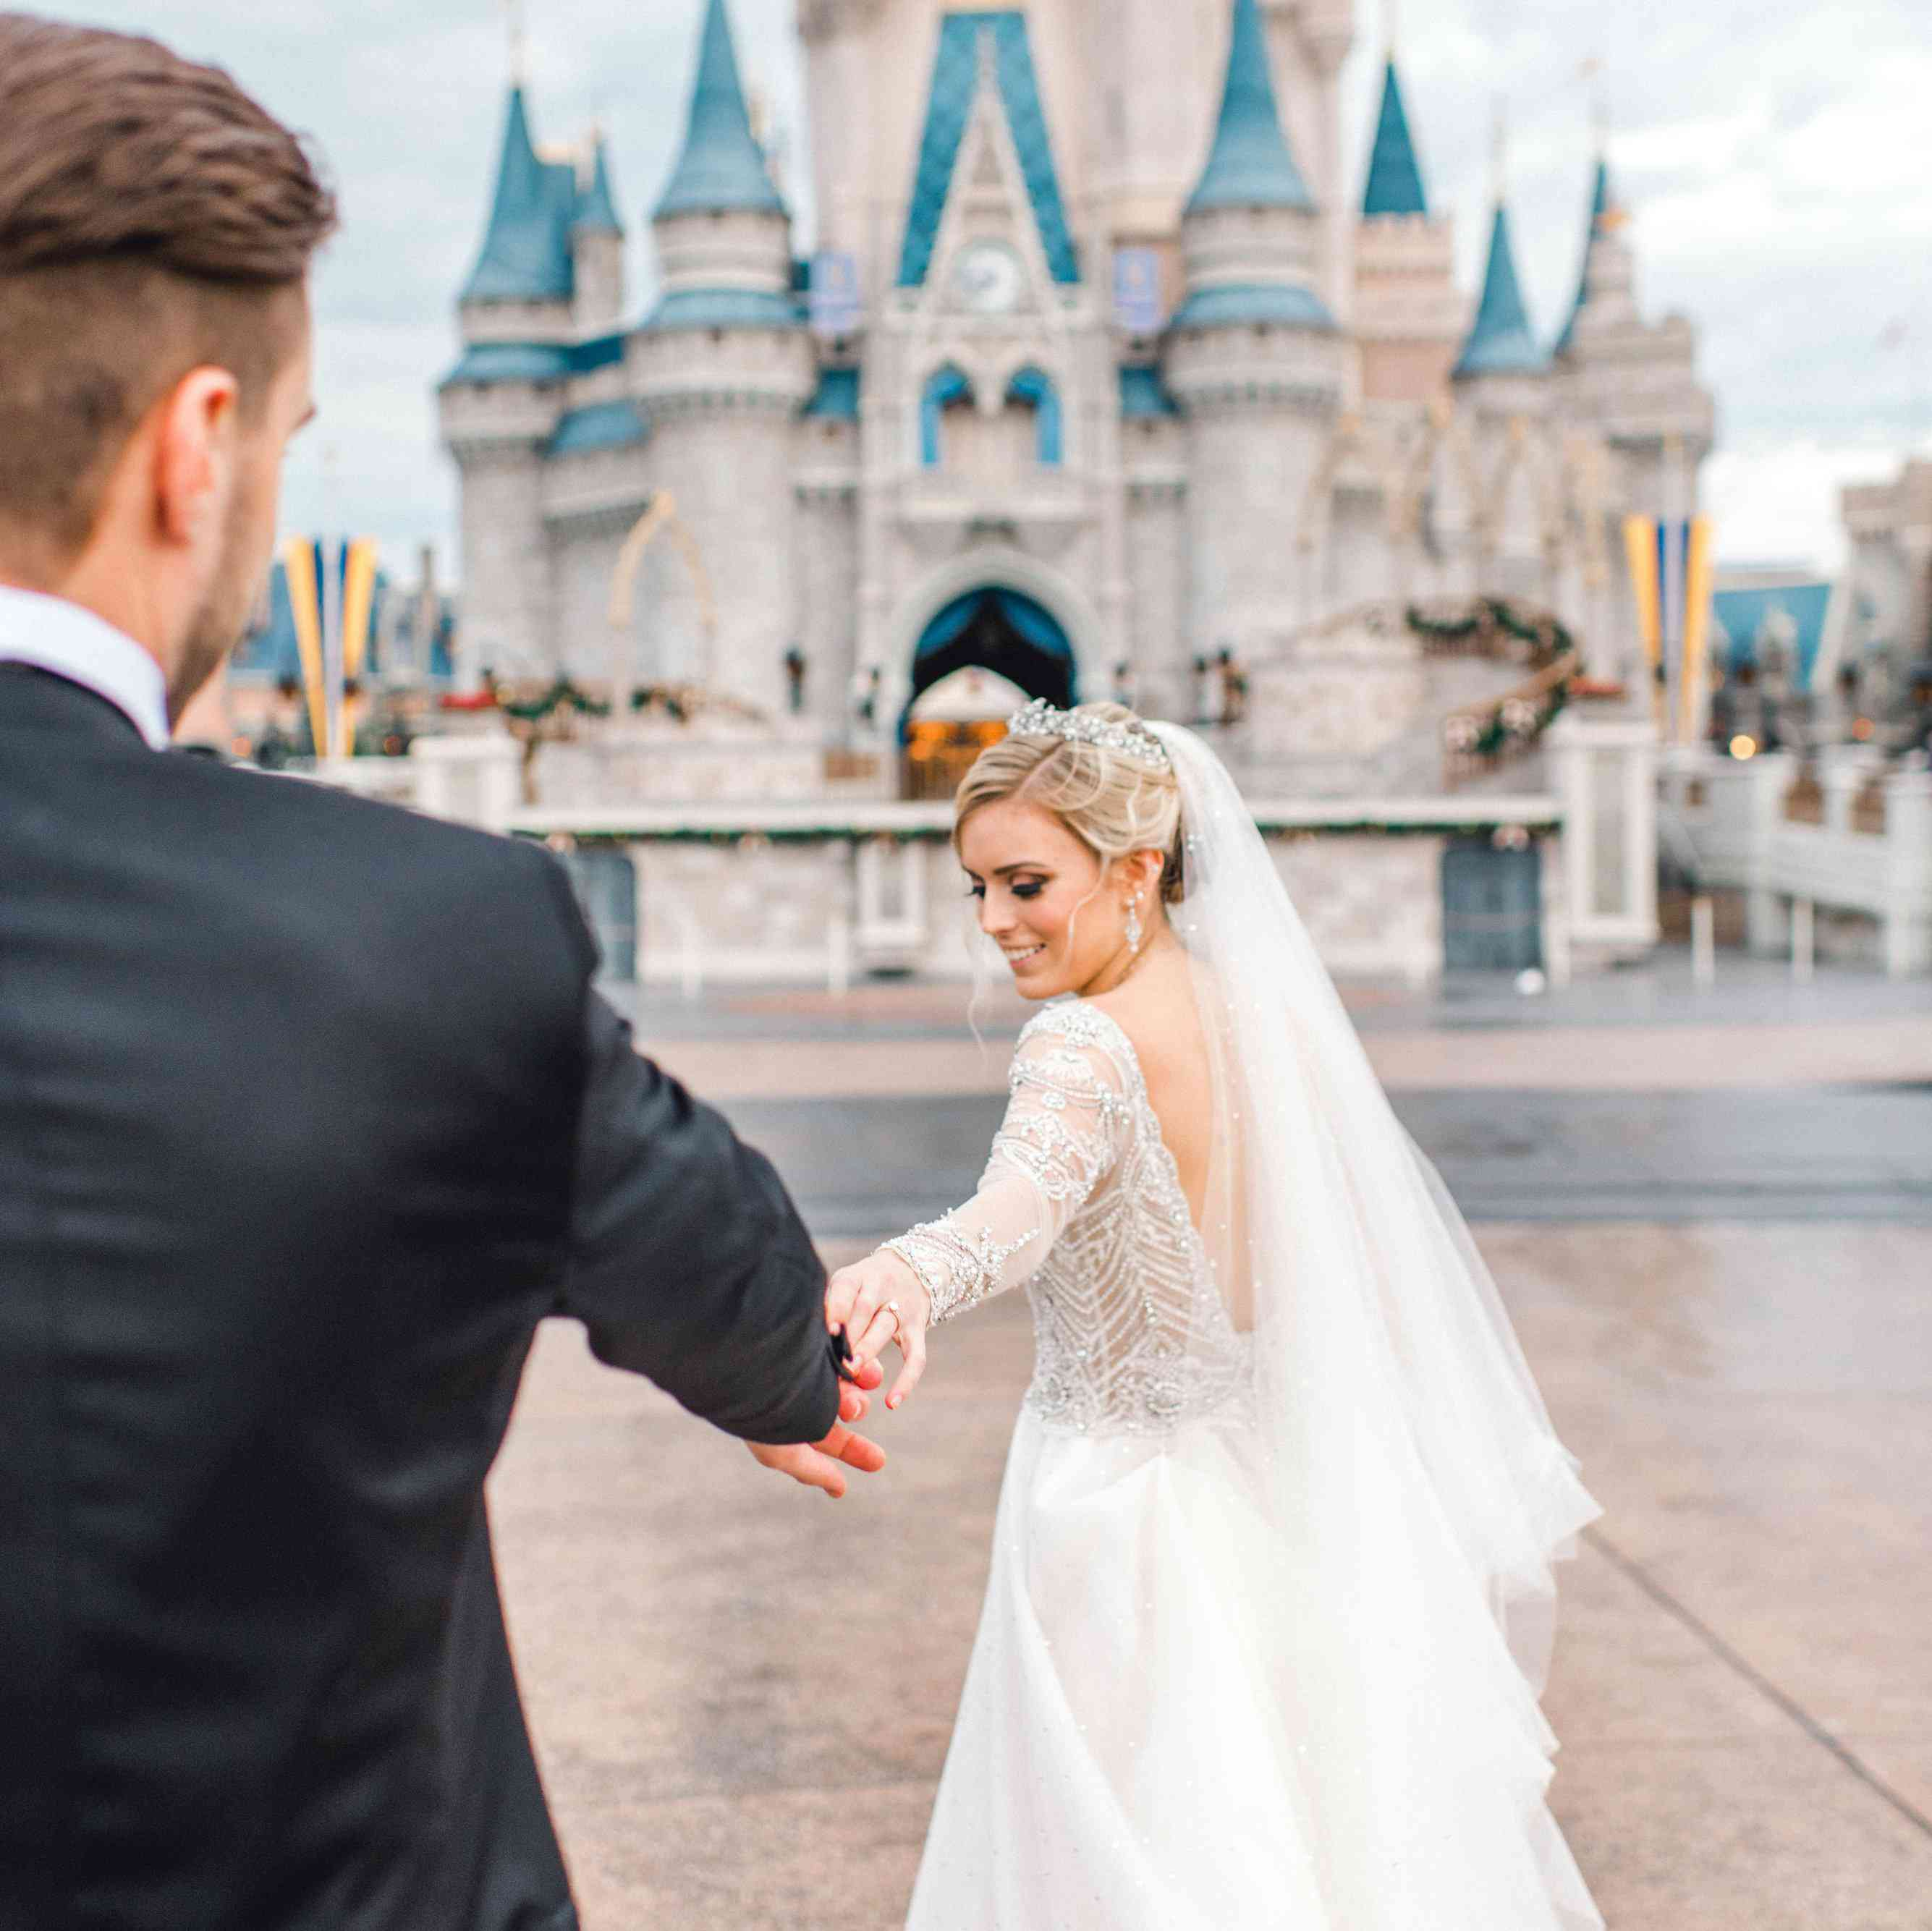 Disney Wedding Dress.Everything You Need To Know About Having A Brides Approved Disney